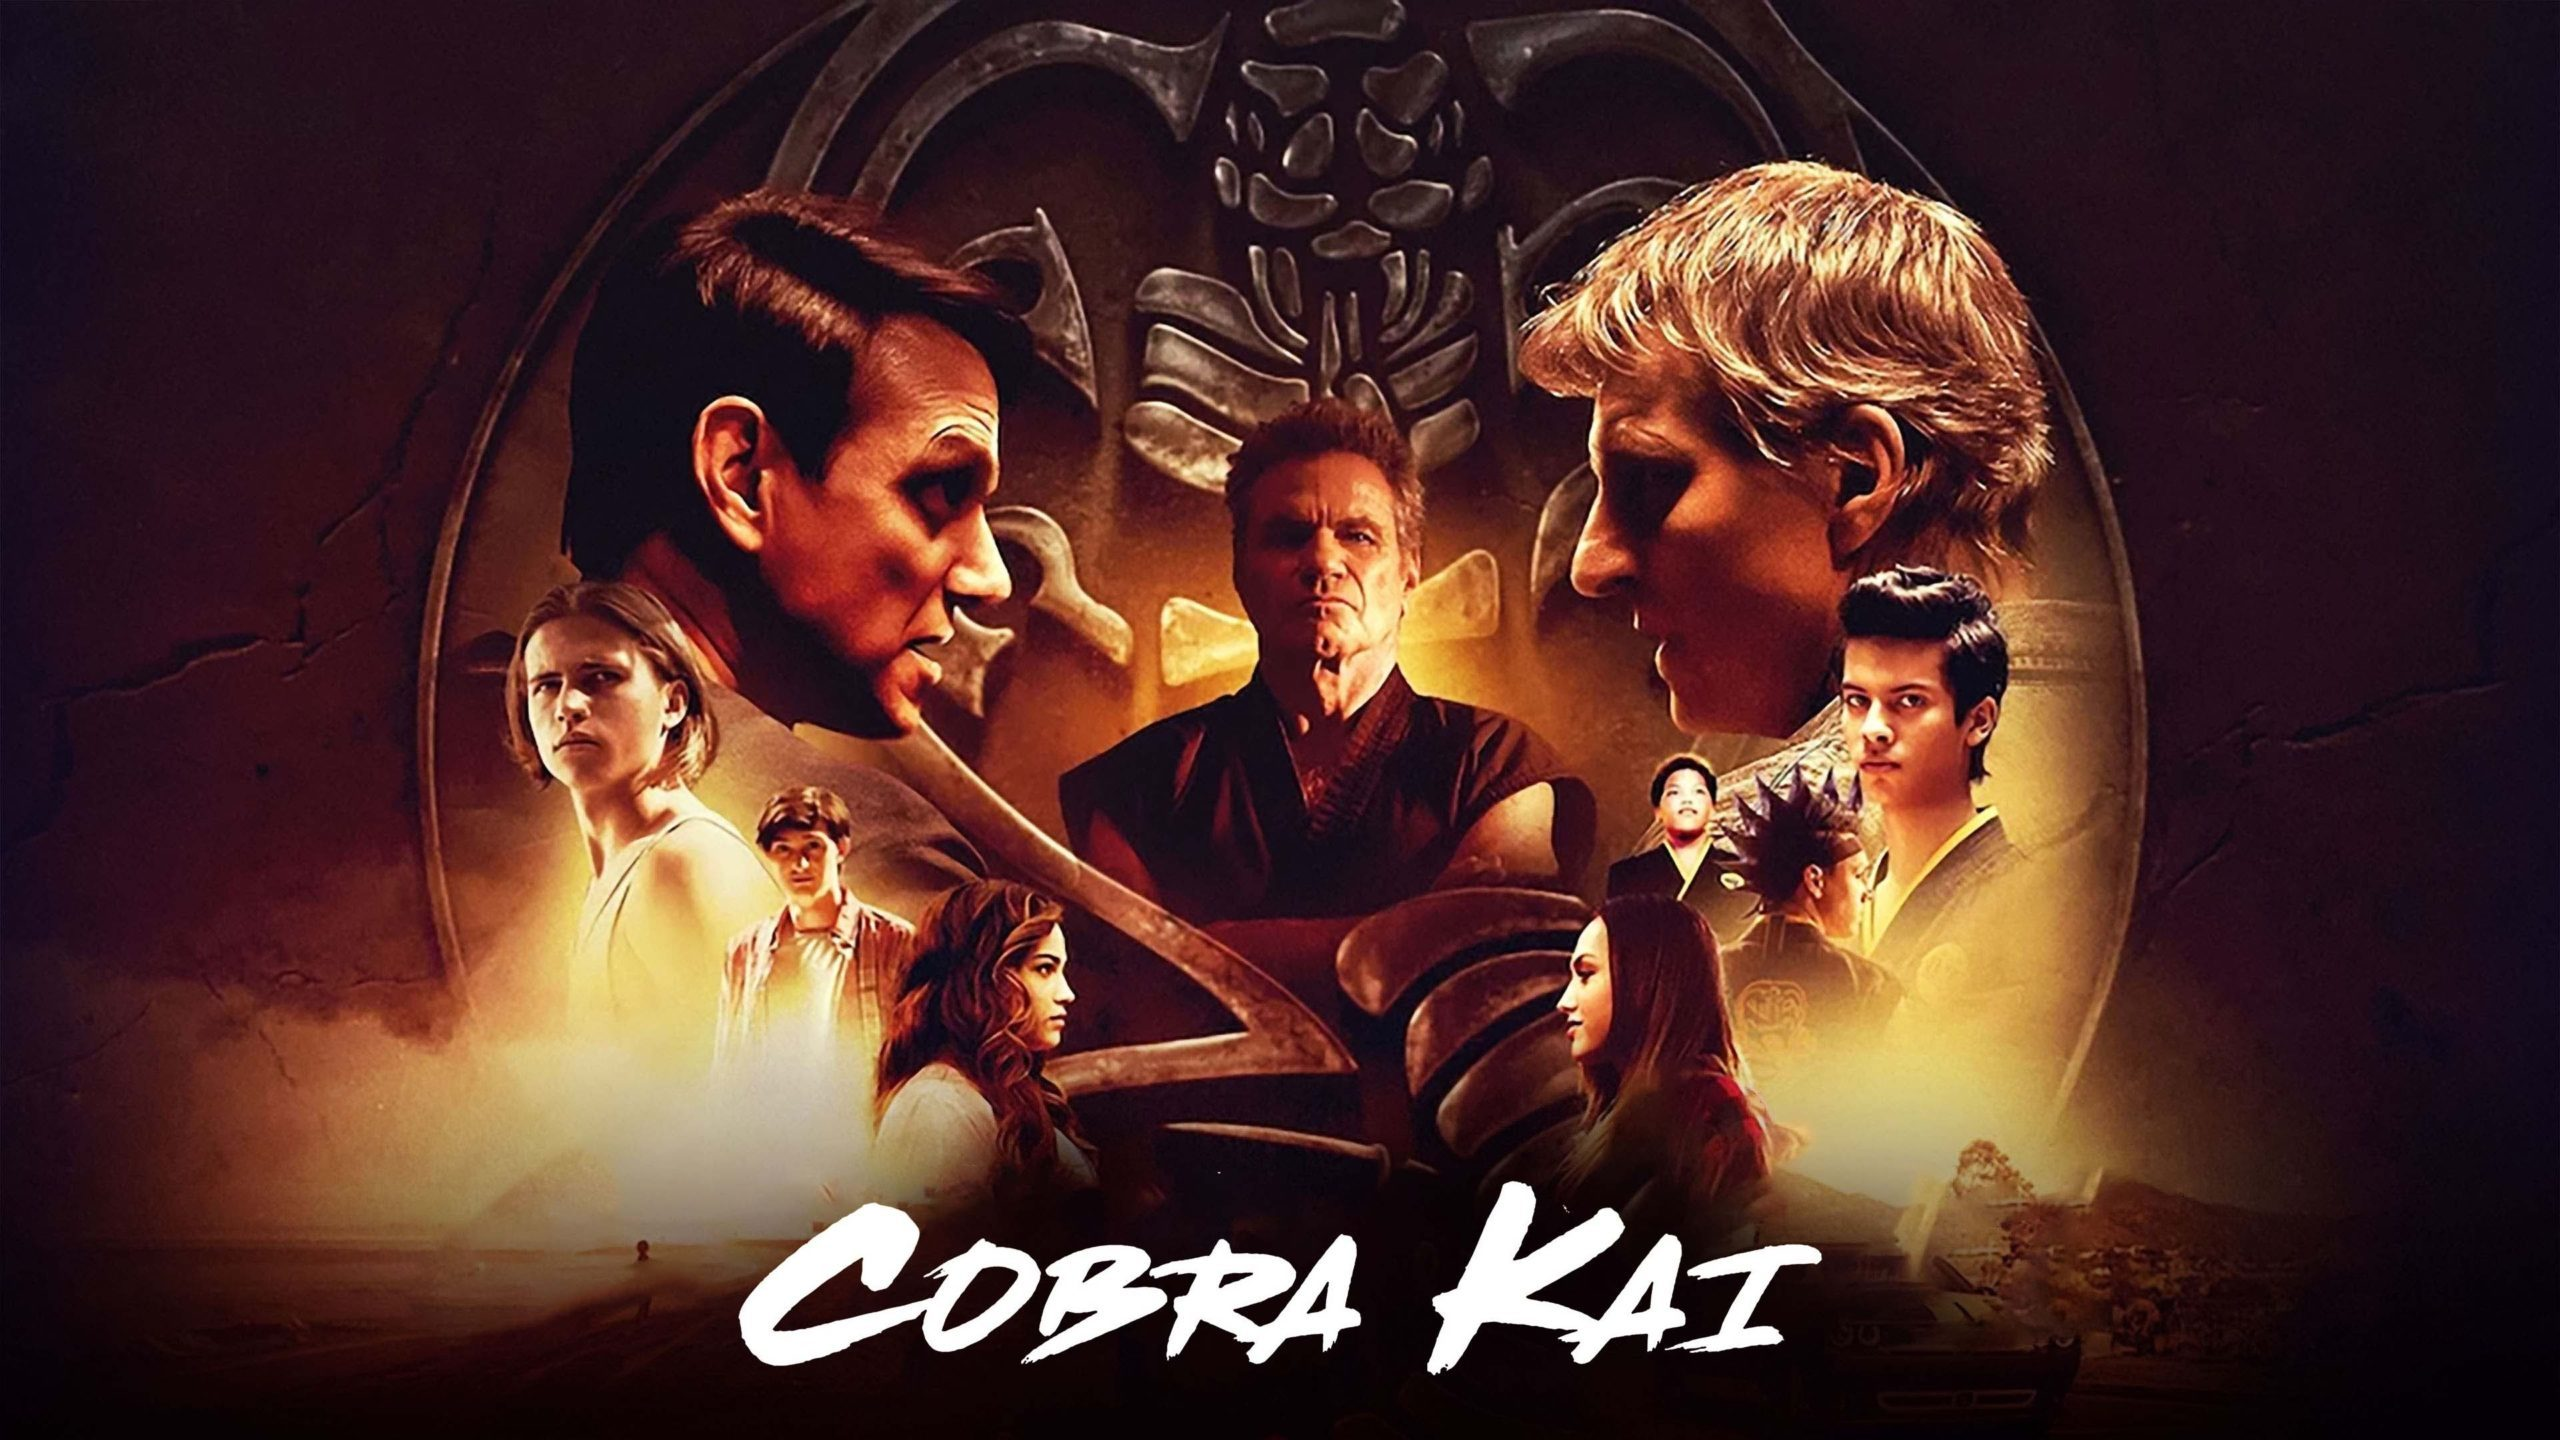 Is There a Season 4 for Cobra Kai and When Is It Coming On Netflix